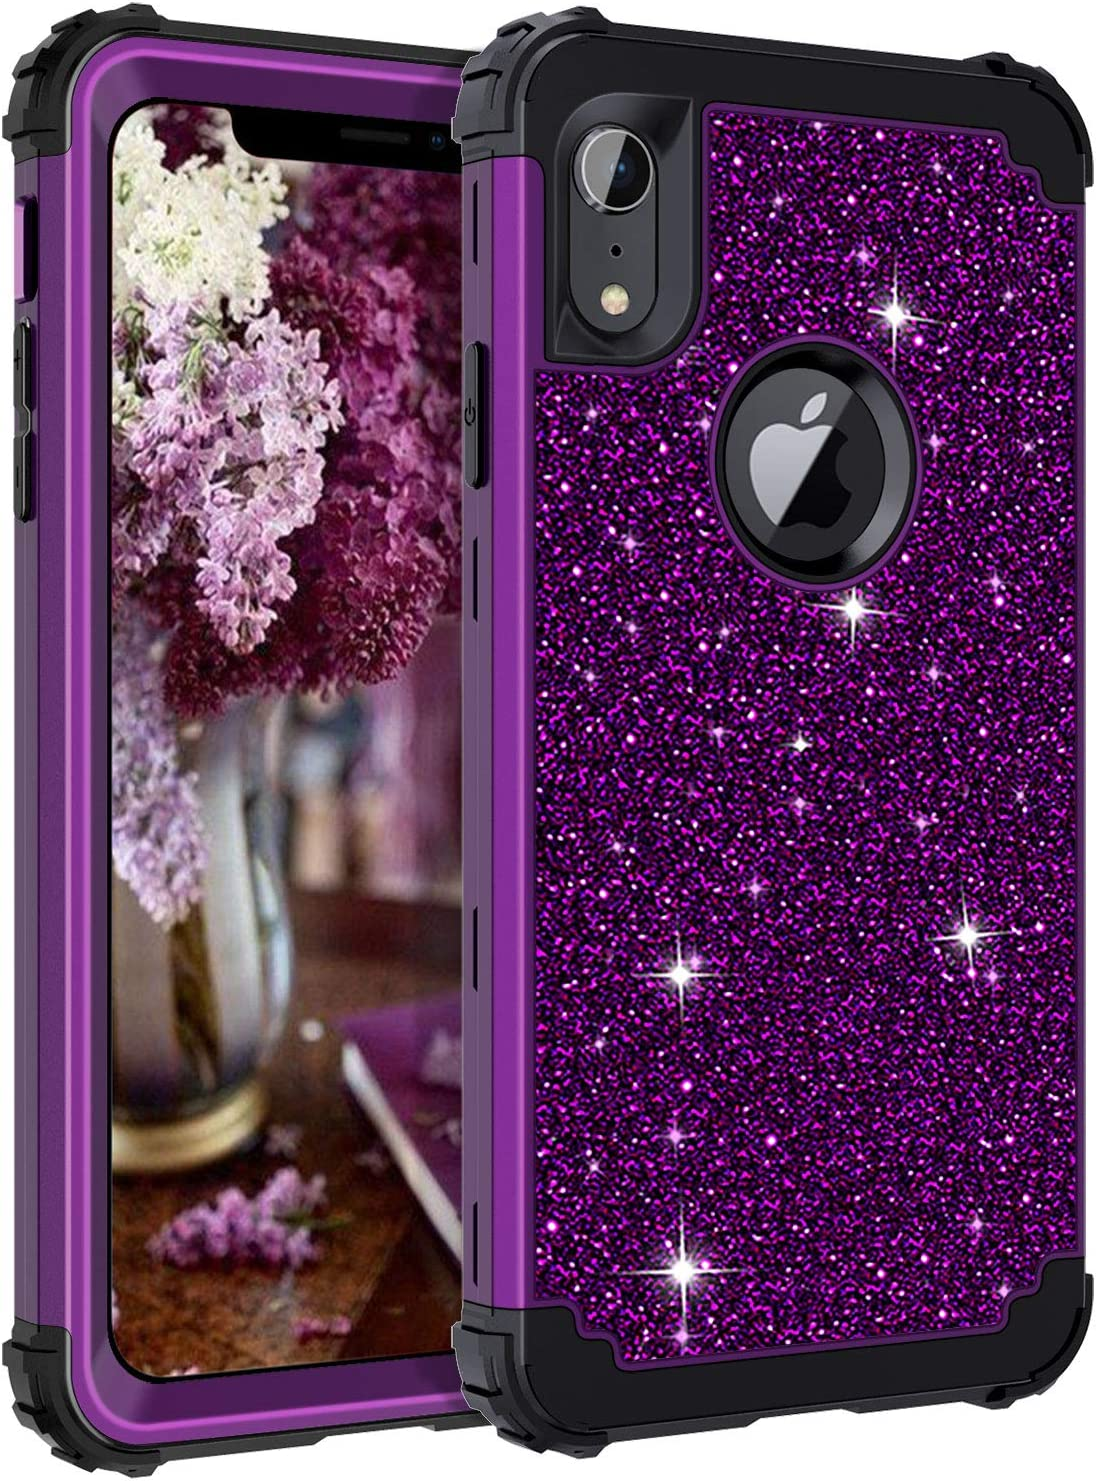 LONTECT Compatible iPhone XR 2018 Case Glitter Sparkle Bling Heavy Duty Hybrid Sturdy High Impact Shockproof Protective Cover Case for Apple iPhone XR 6.1 Display, Shiny Purple